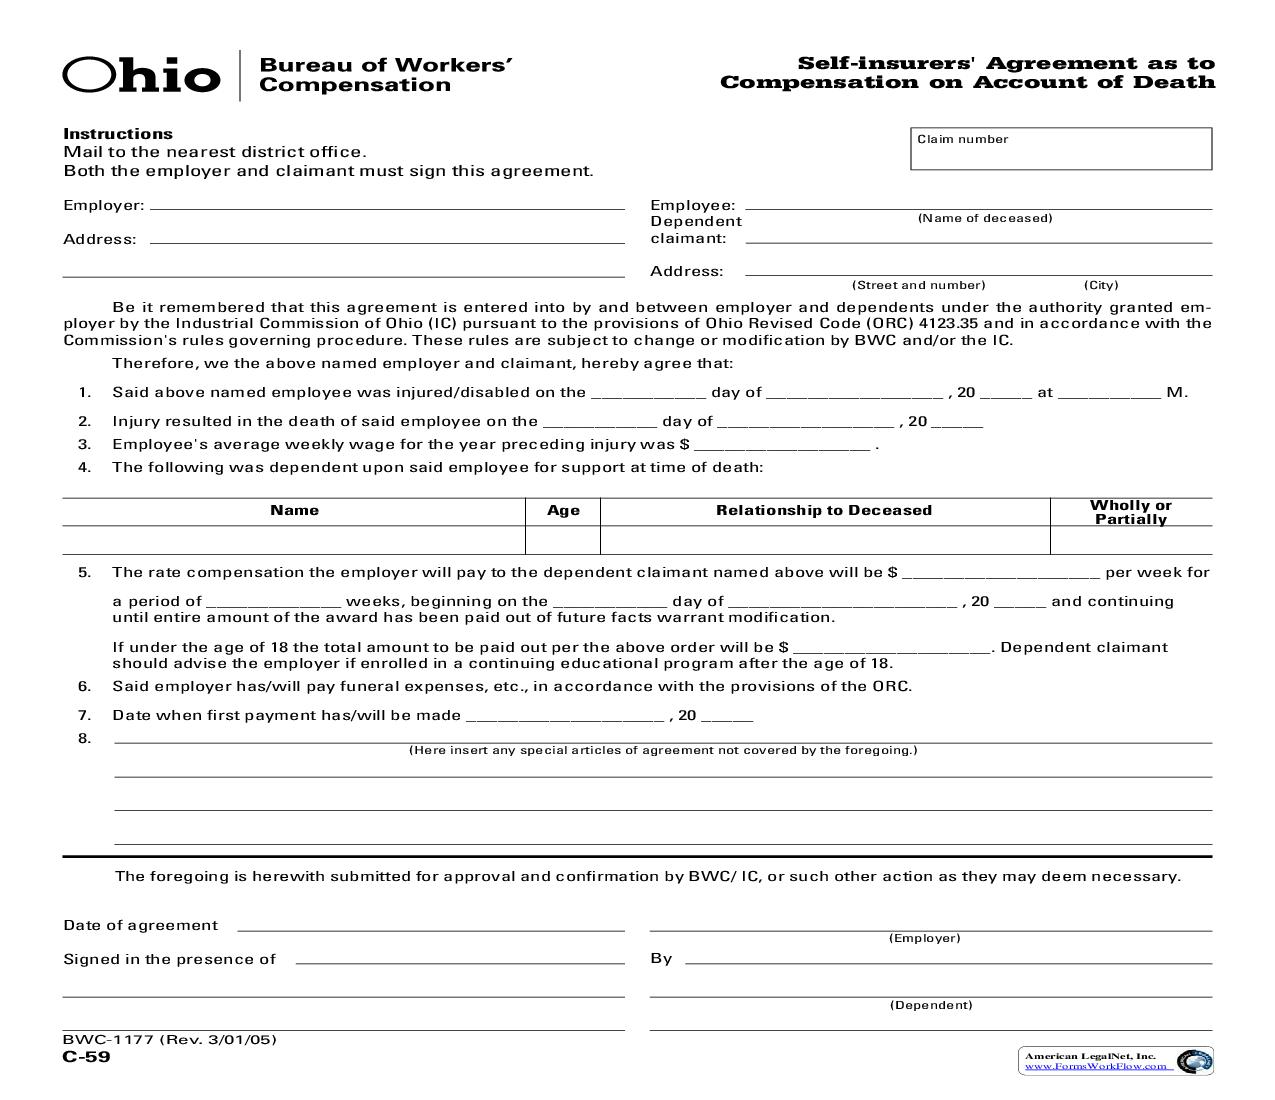 Self Insurers Agreement As To Compensation On Account Of Death {BWC-1177} | Pdf Fpdf Doc Docx | Ohio